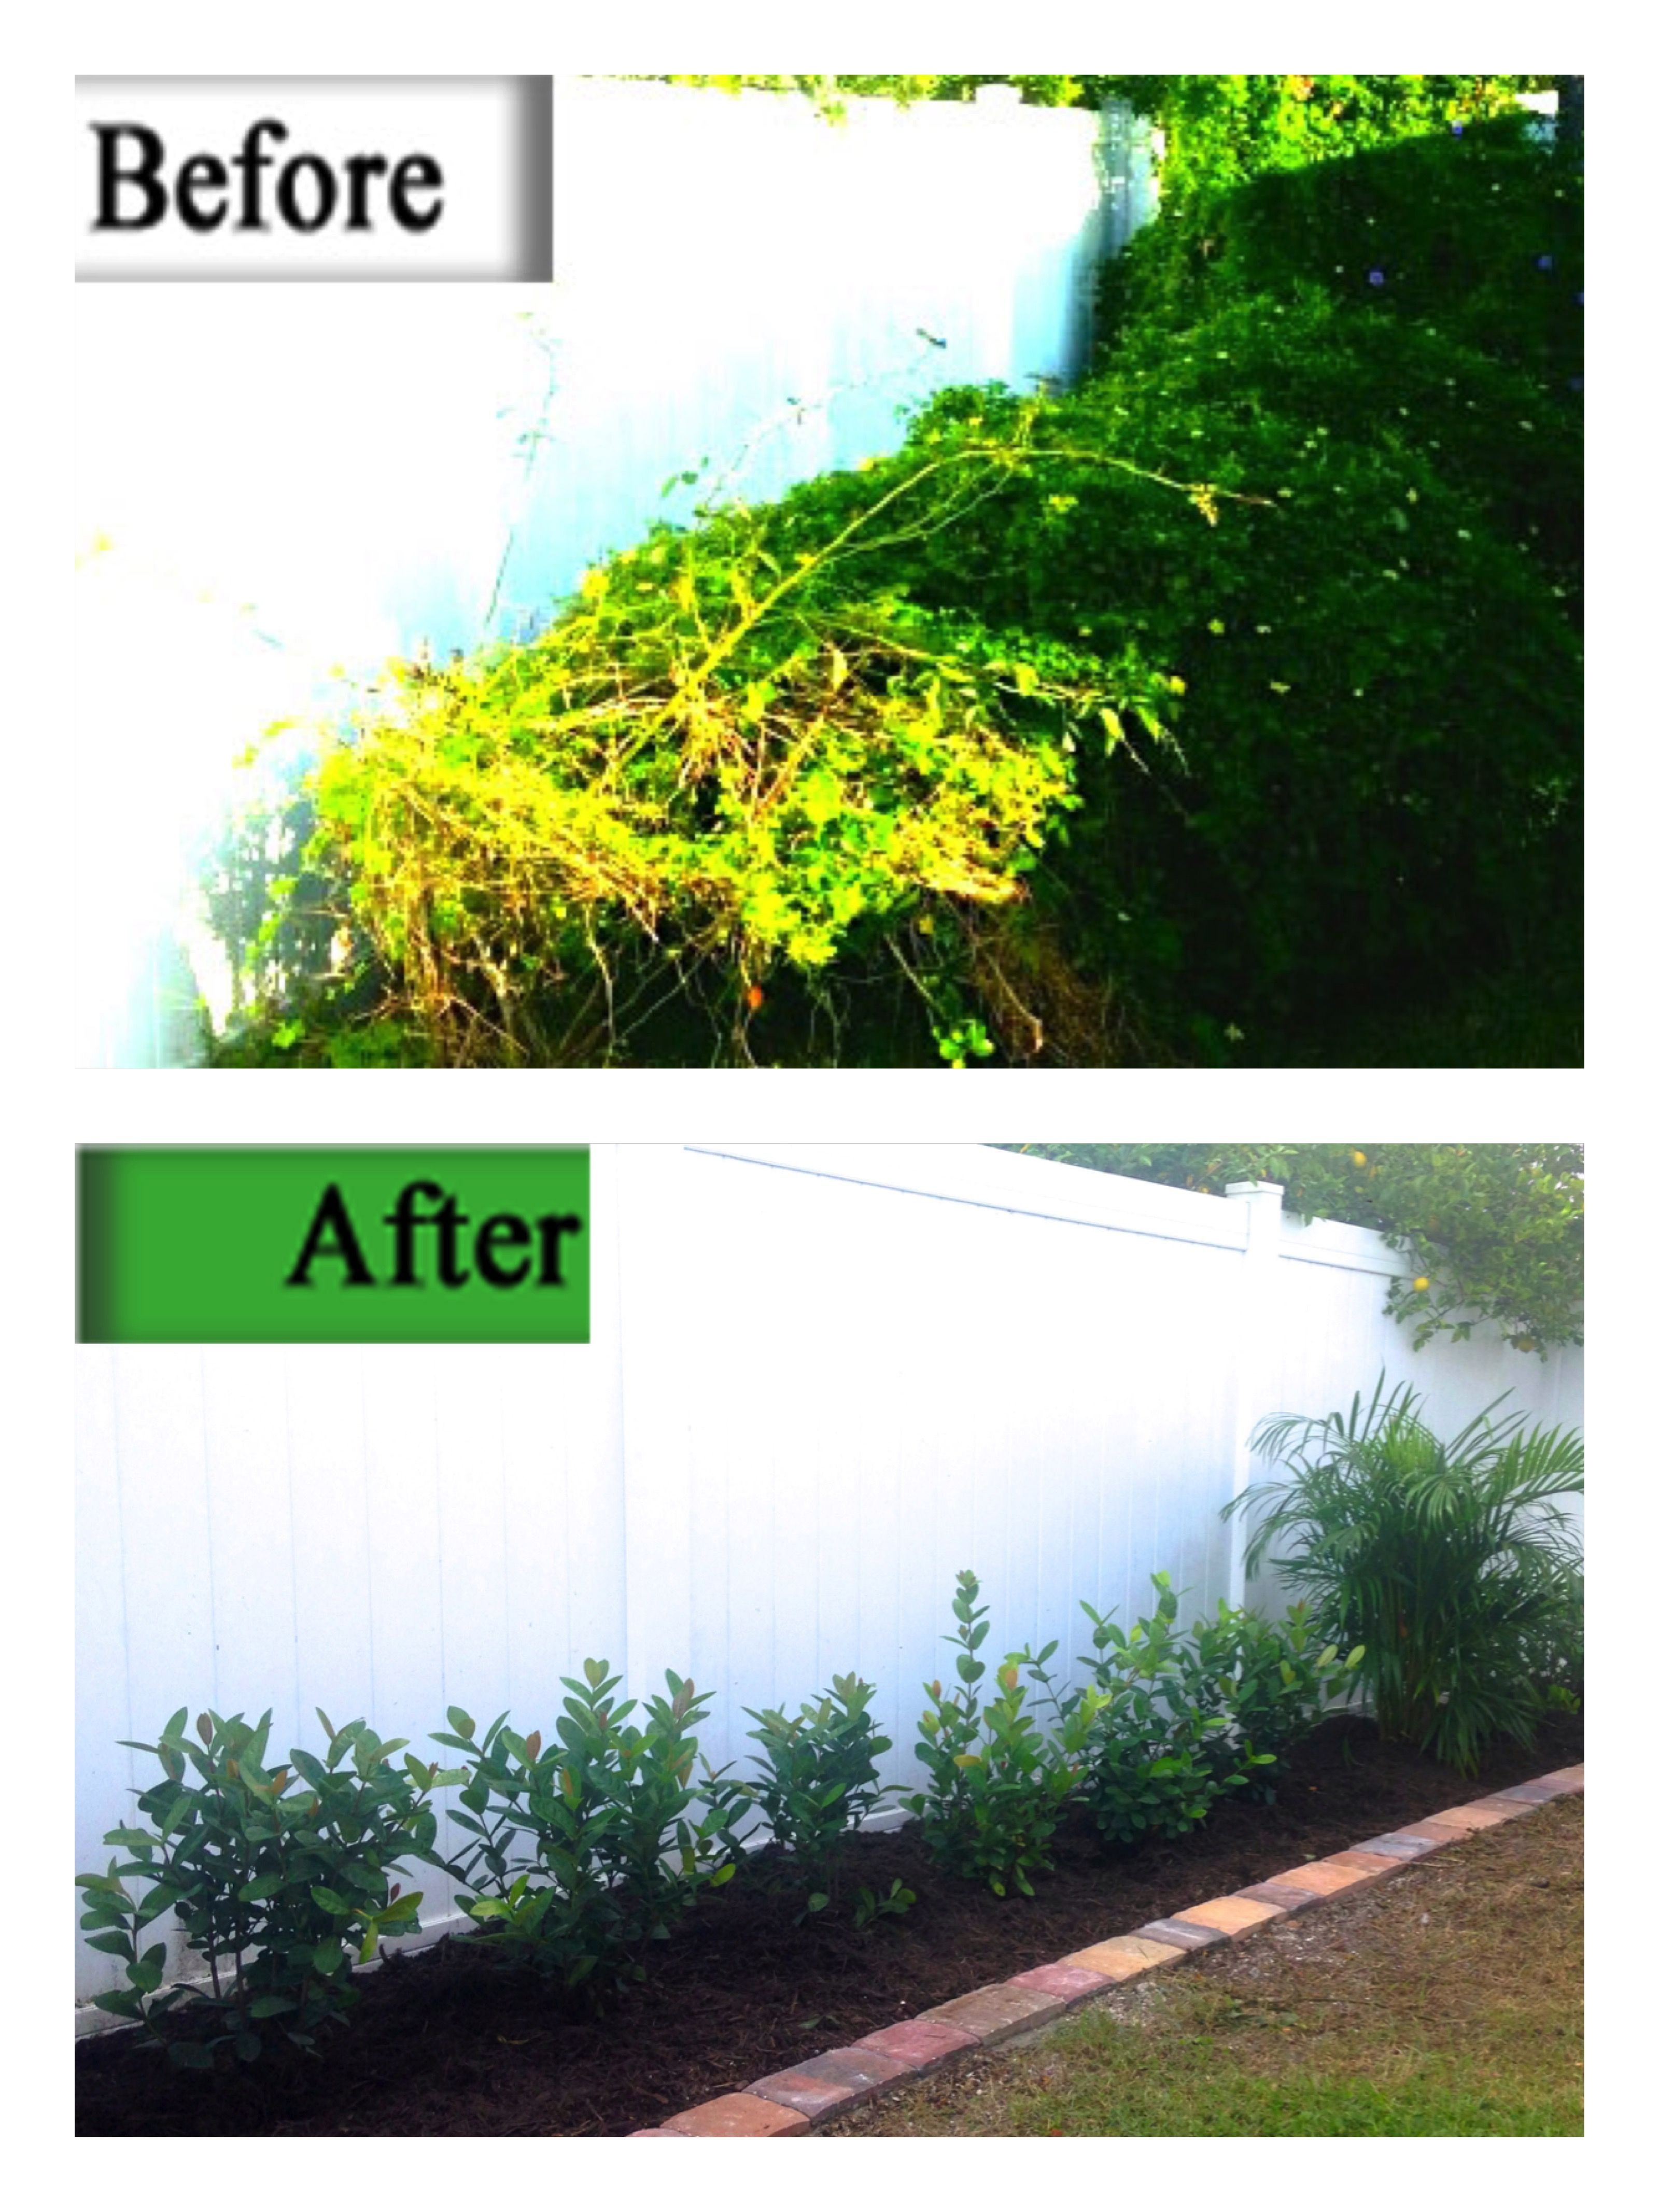 We replaced the overgrown plantings with paver edging, Ixora shrubs and Arica palms, and a fresh layer of mulch.